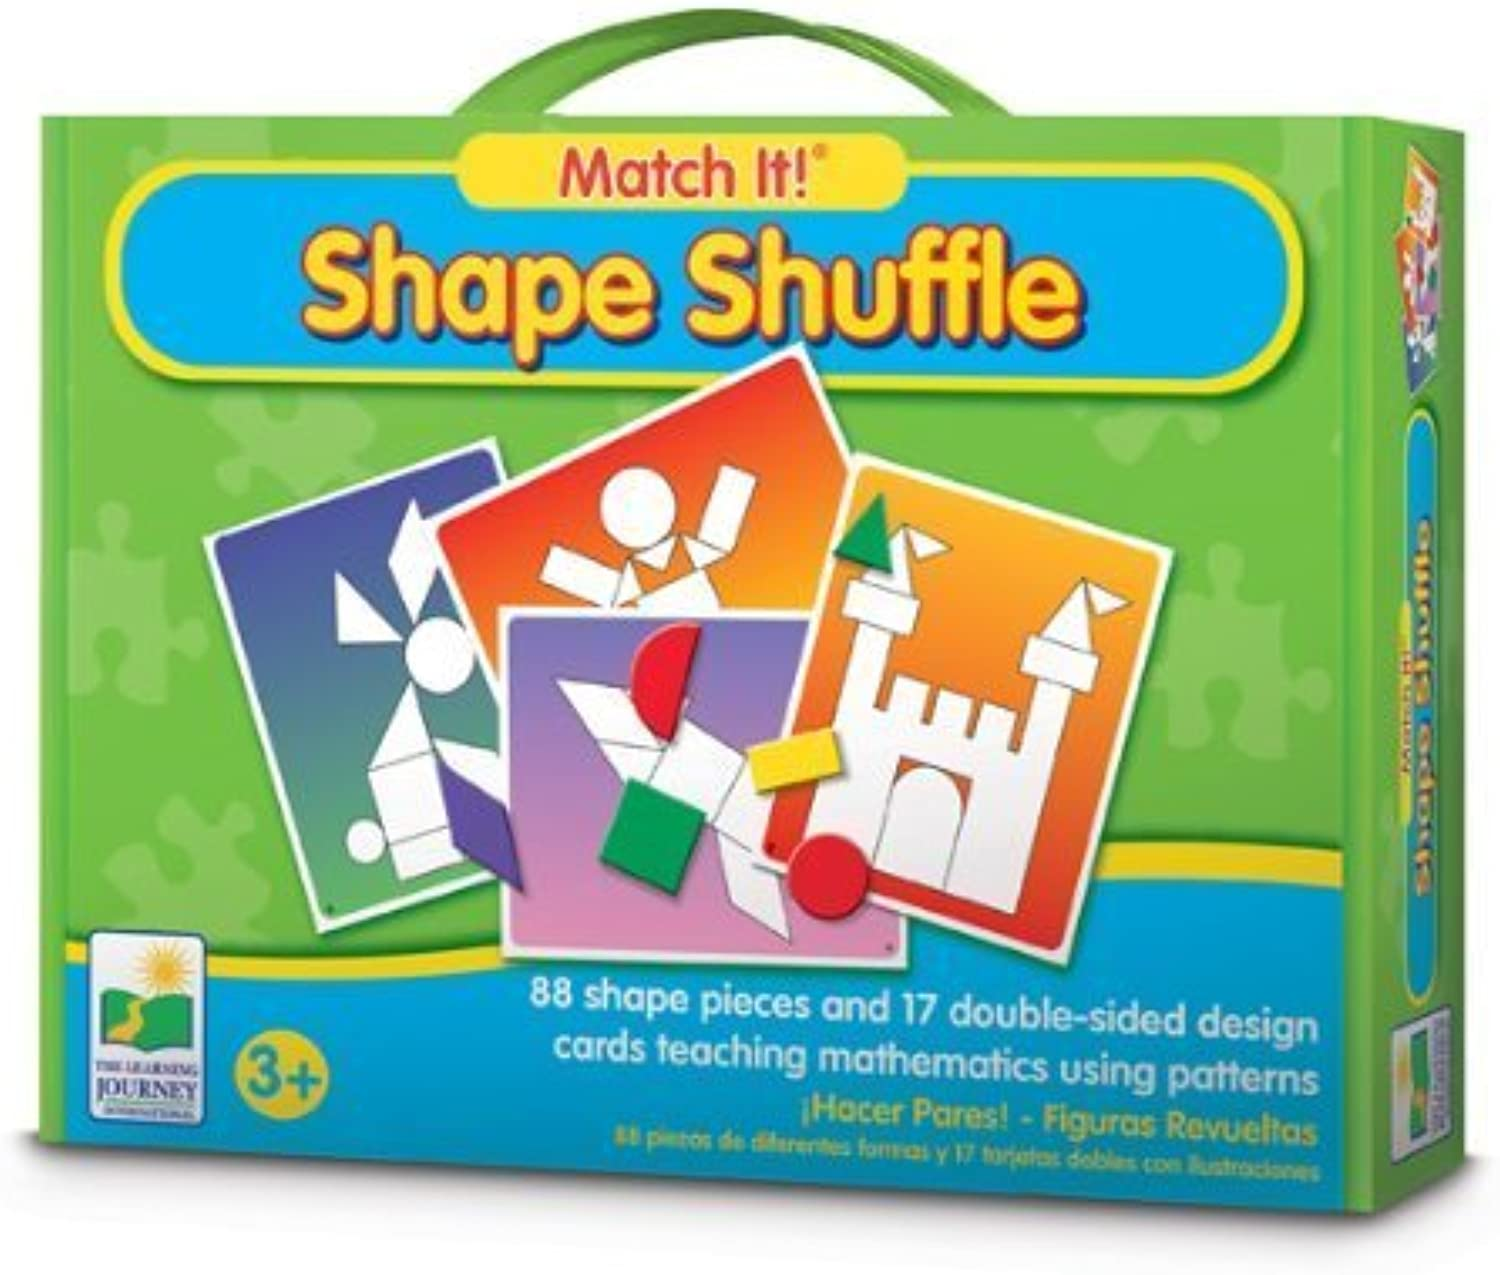 The Learning Journey Match It  Shape Shuffle by The Learning Journey International [Toy]